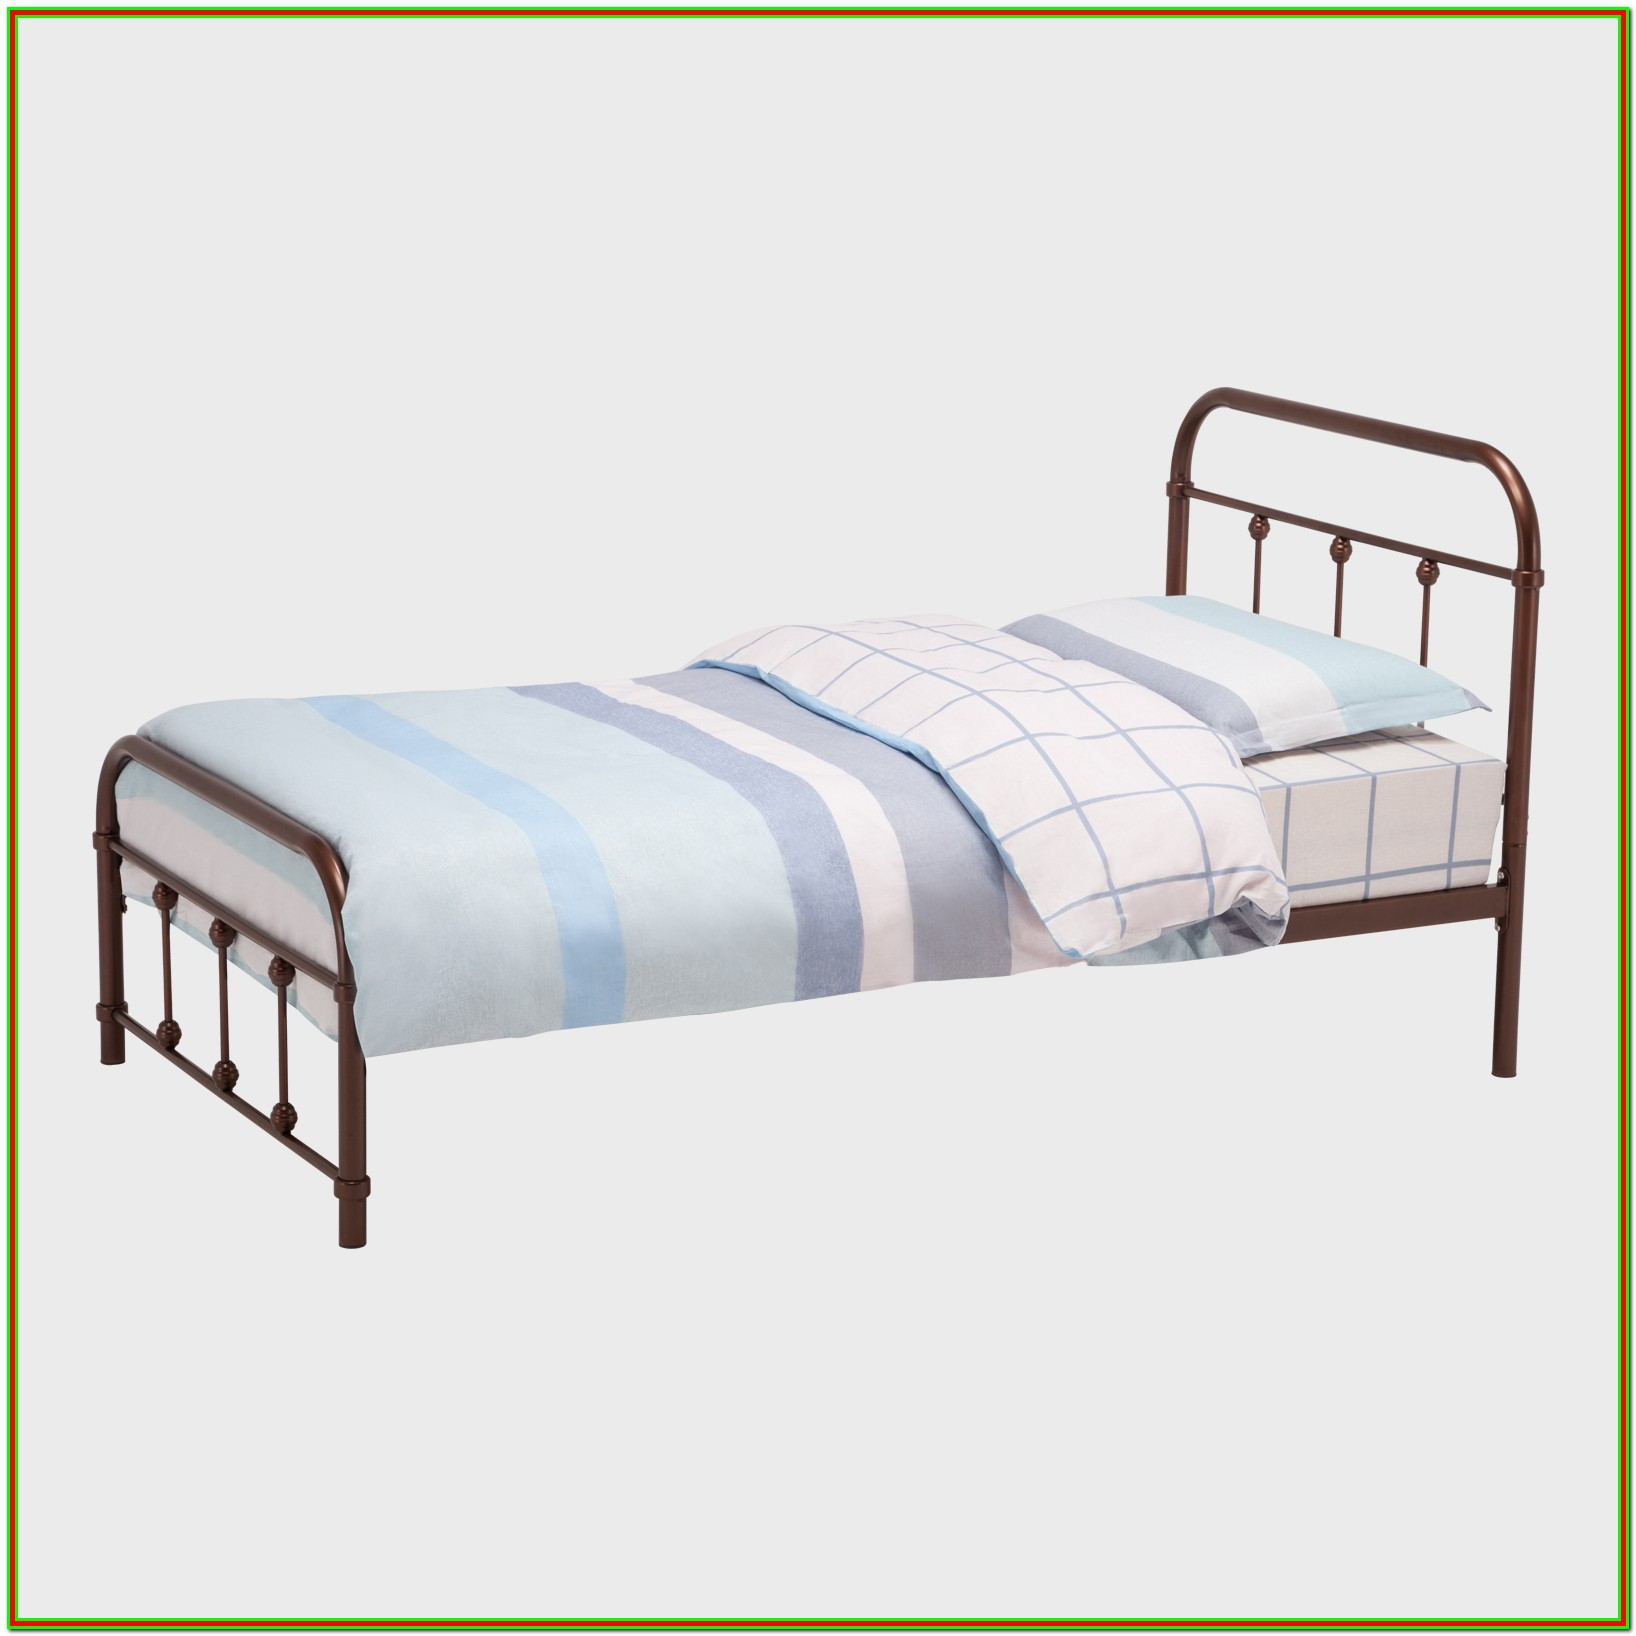 Metal Platform Bed Frame With Headboard